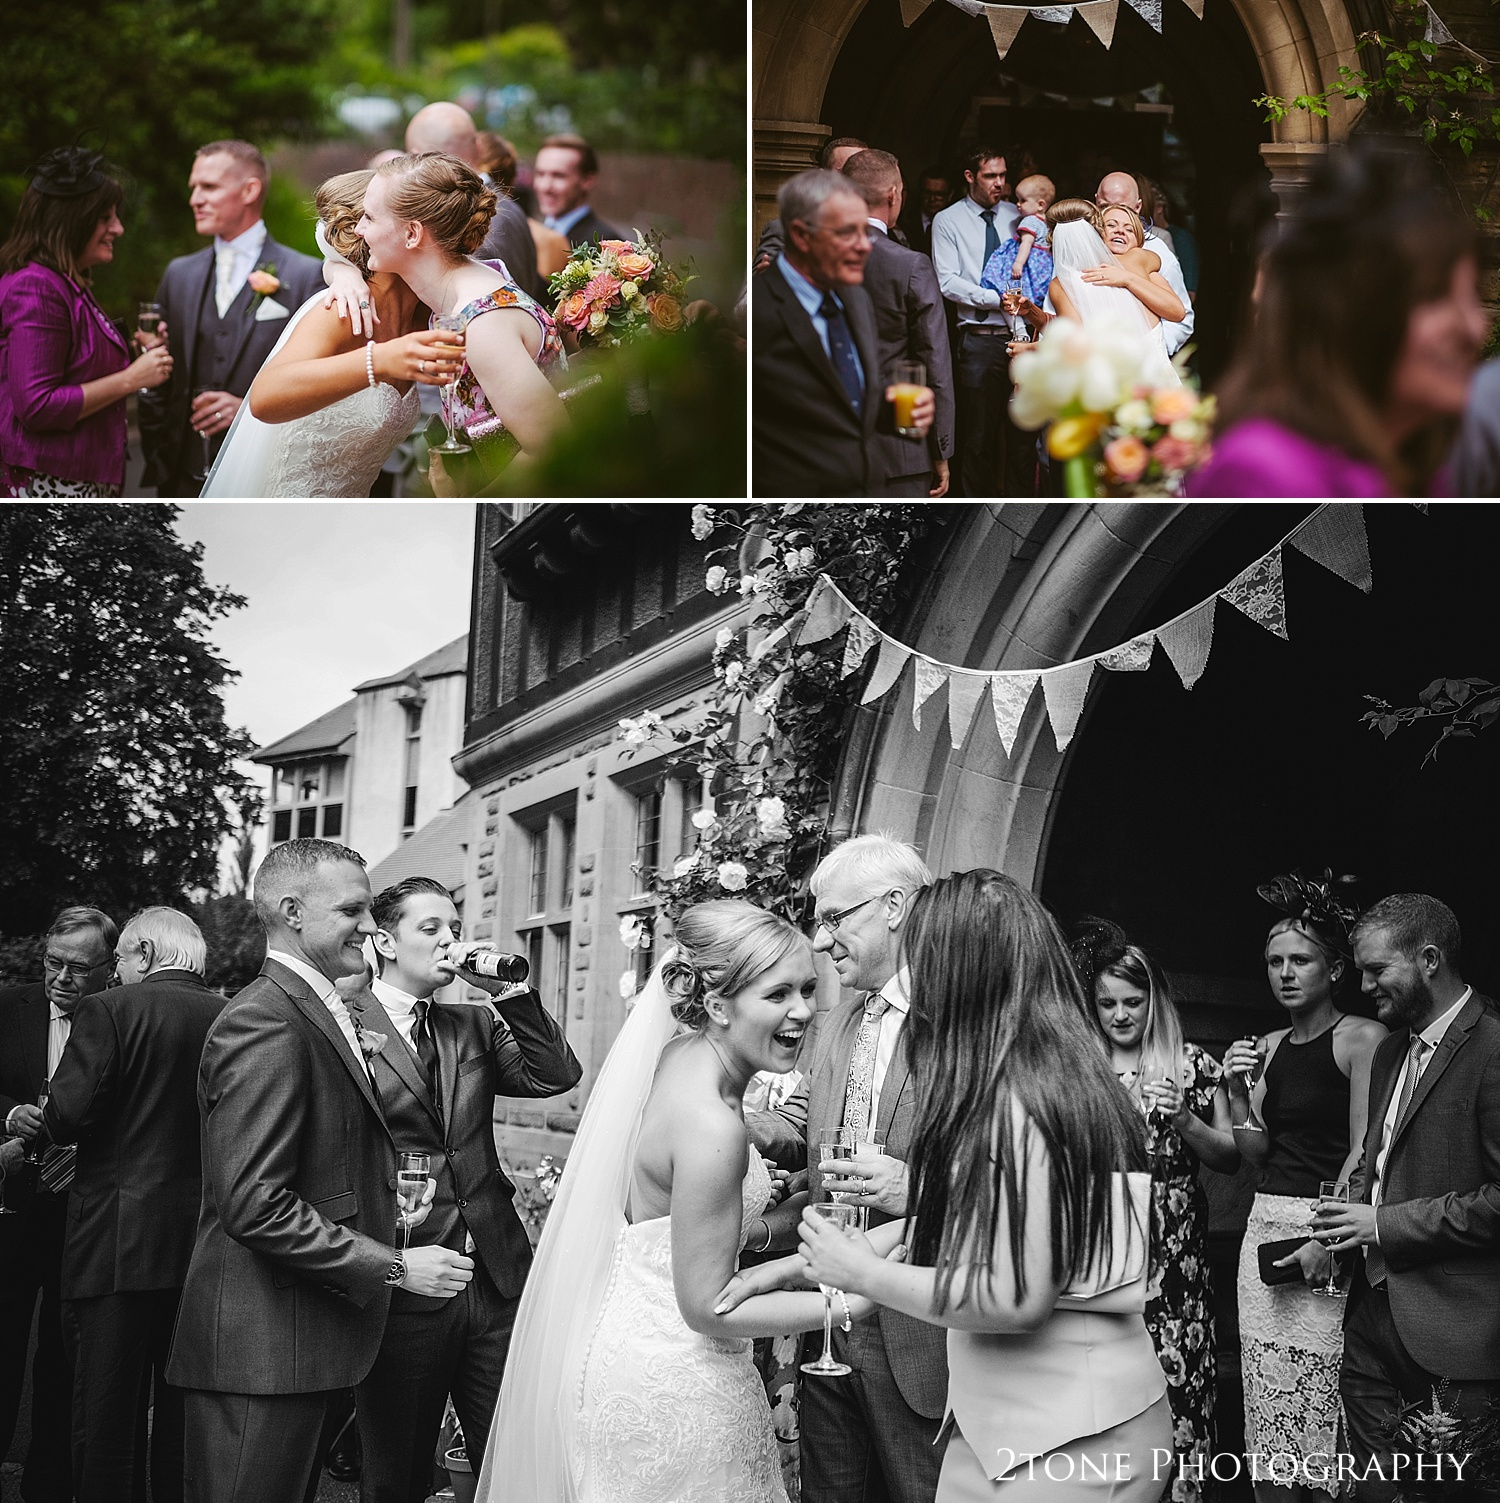 Natural wedding photographs at Jesmond Dene House in Newcastle by 2tone Photography www.2tonephotography.co.uk